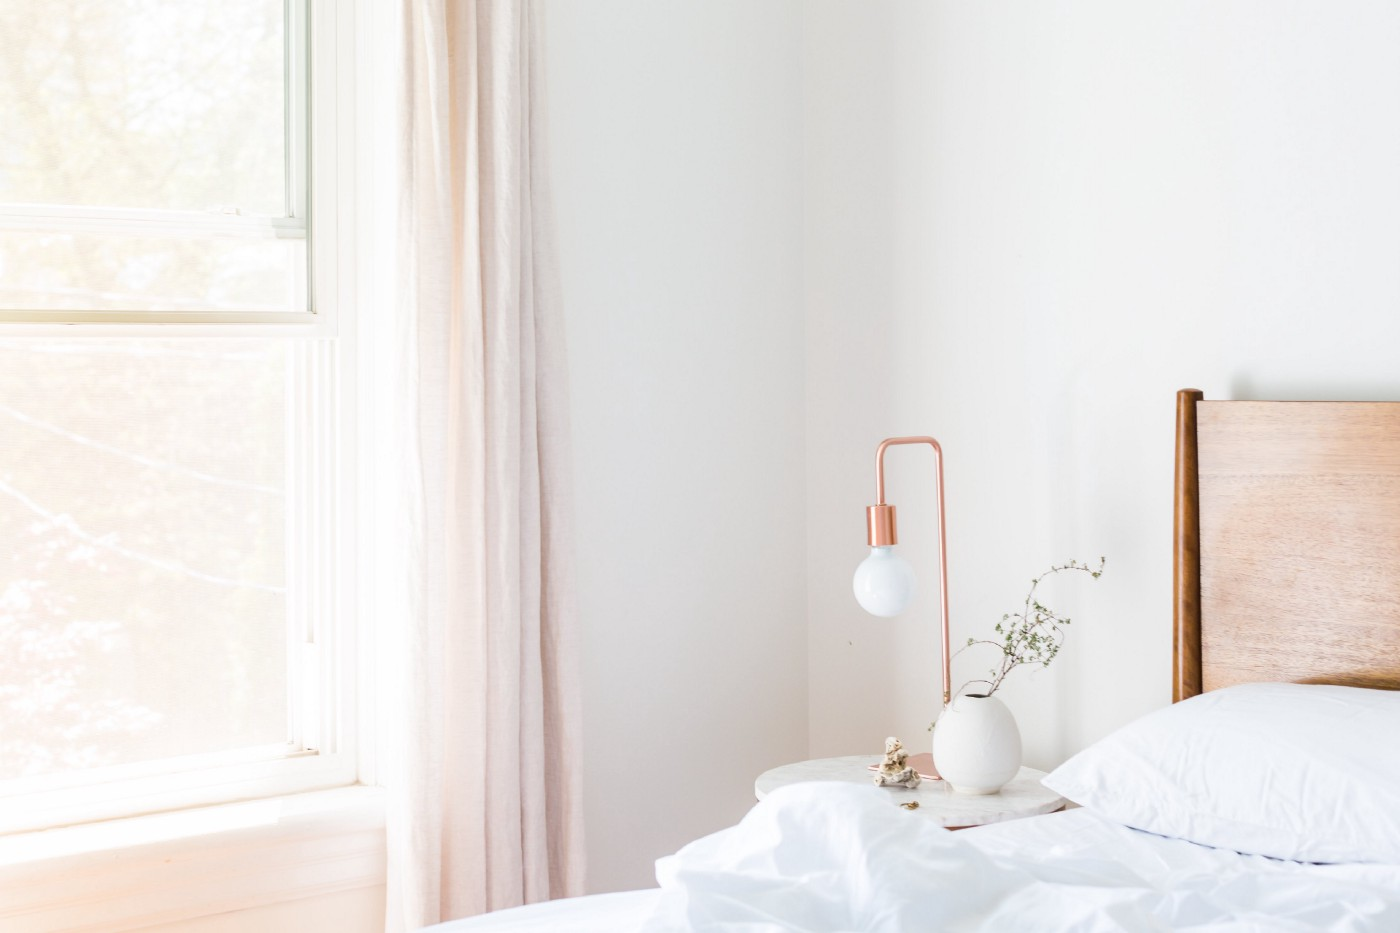 A light-filled bedroom with a bed with white sheets and a side table with a copper accent light and a plant.